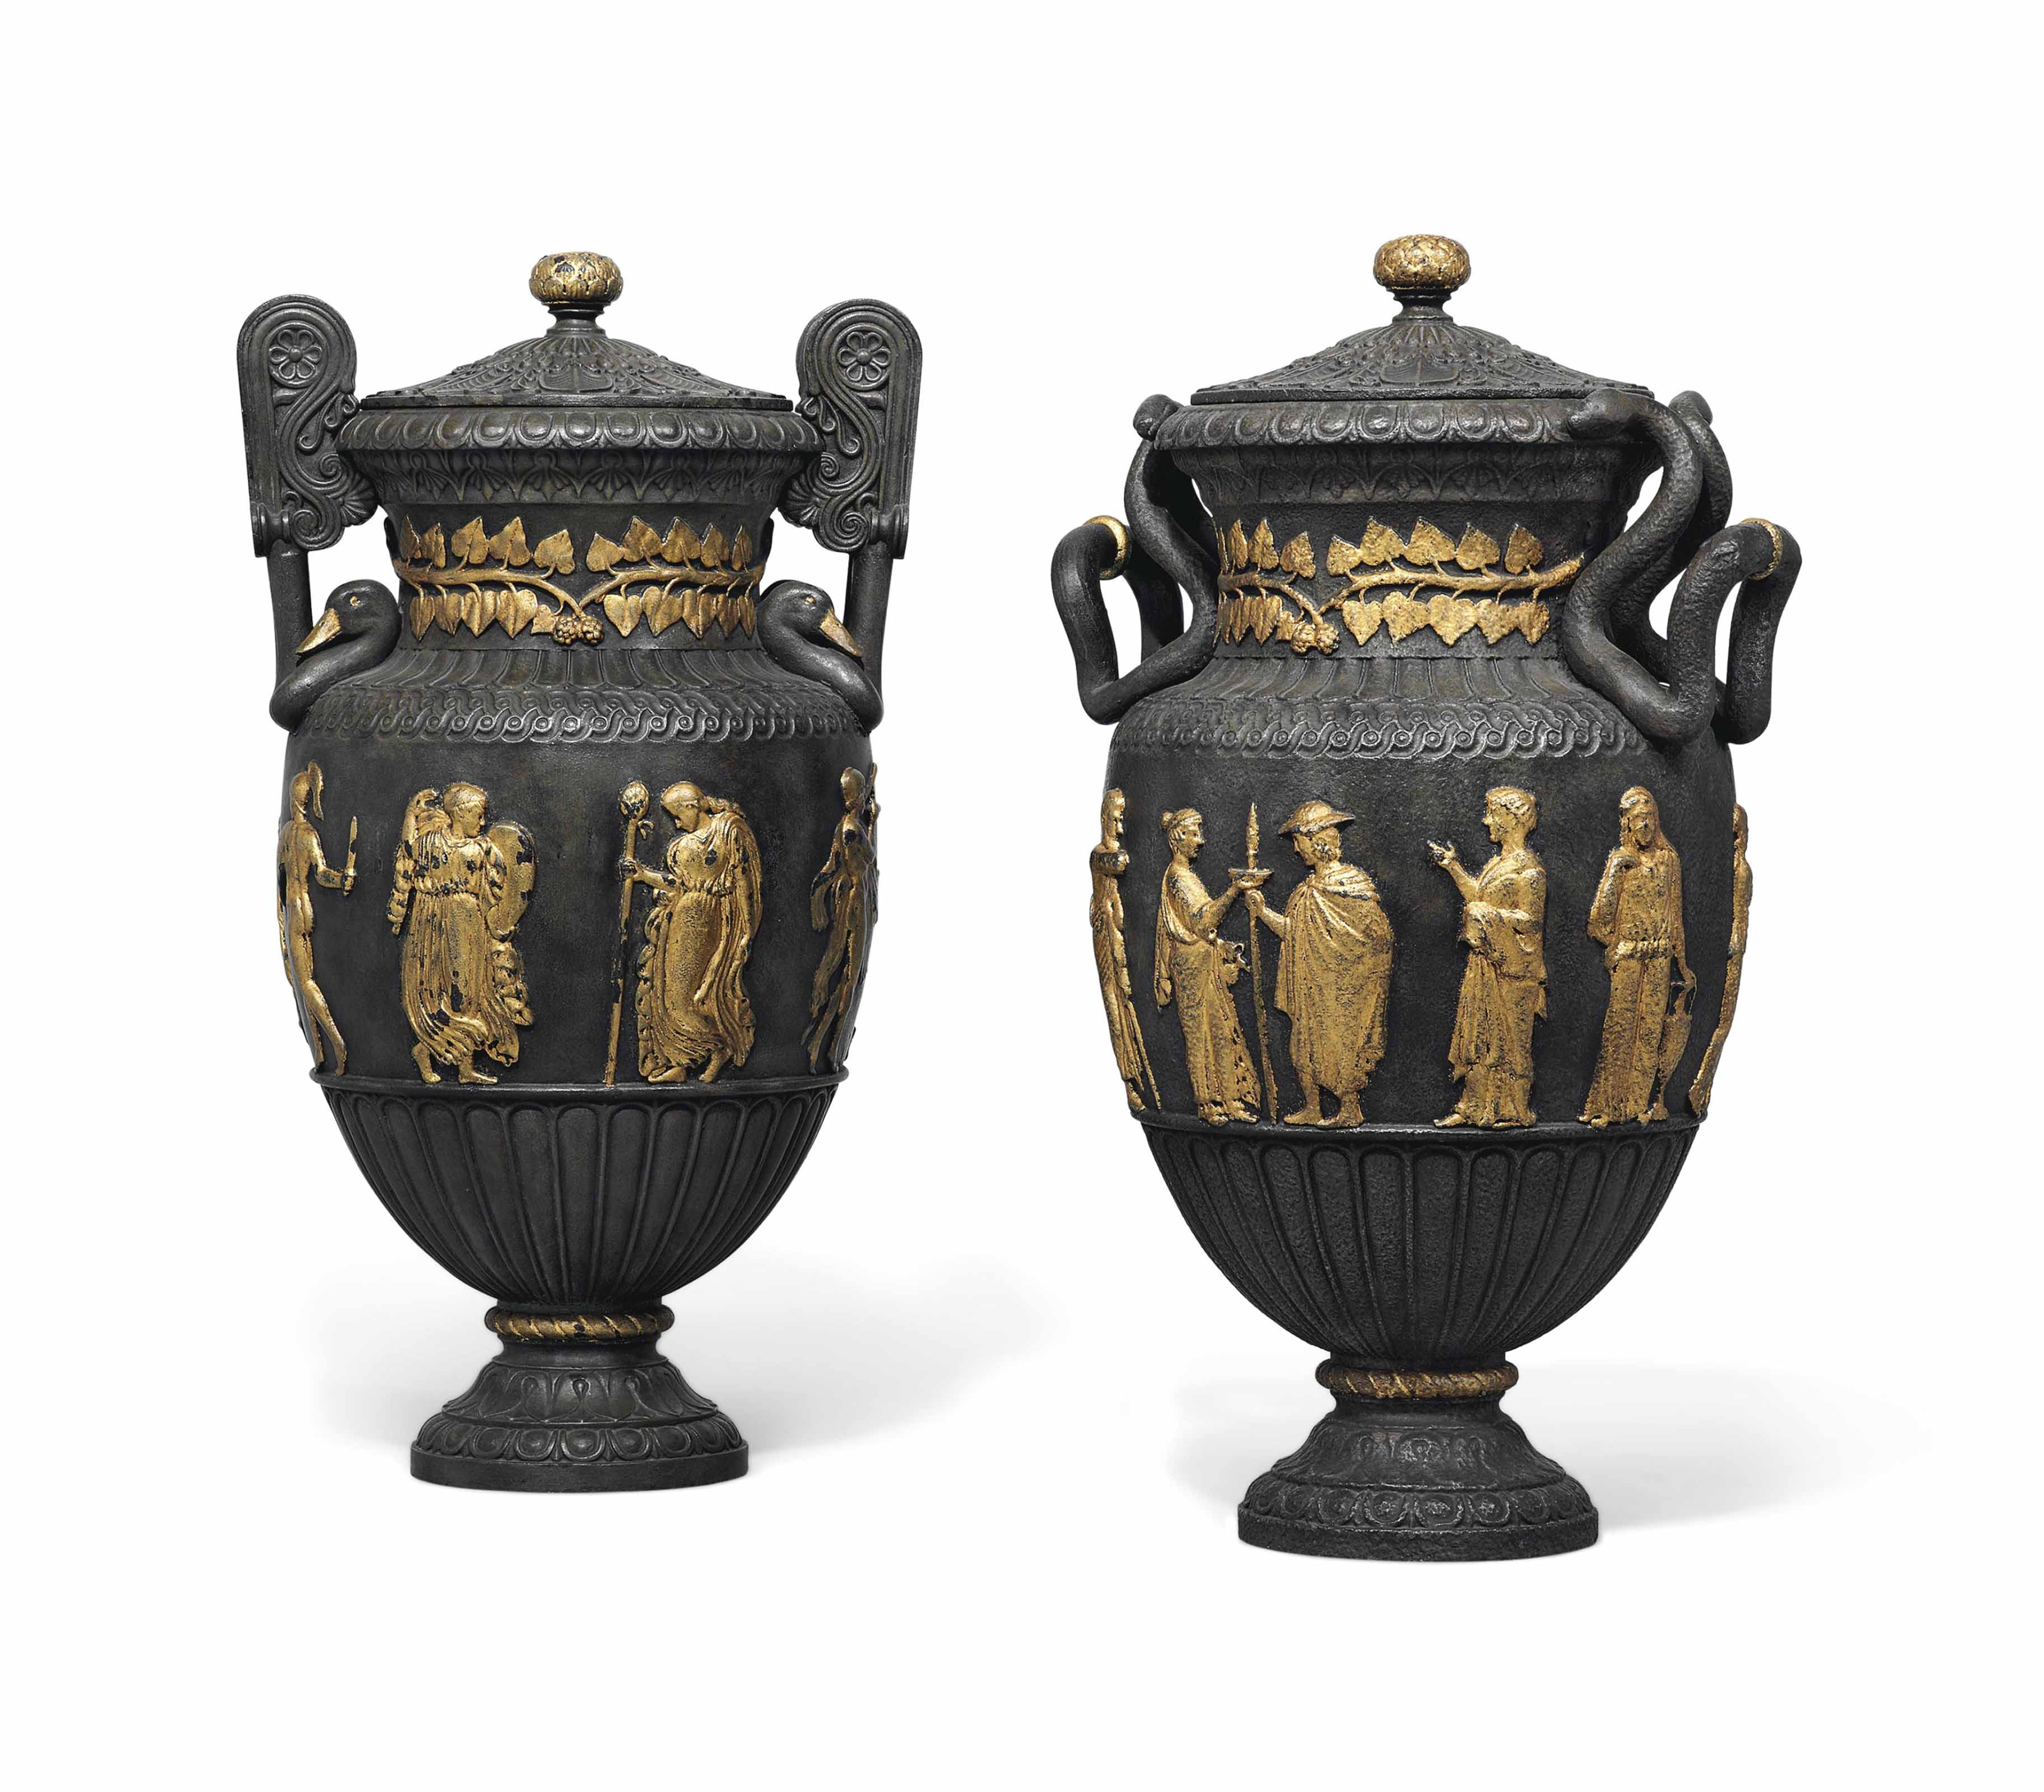 A NEAR PAIR OF PARCEL-GILT AND PATINATED CAST-IRON VASES